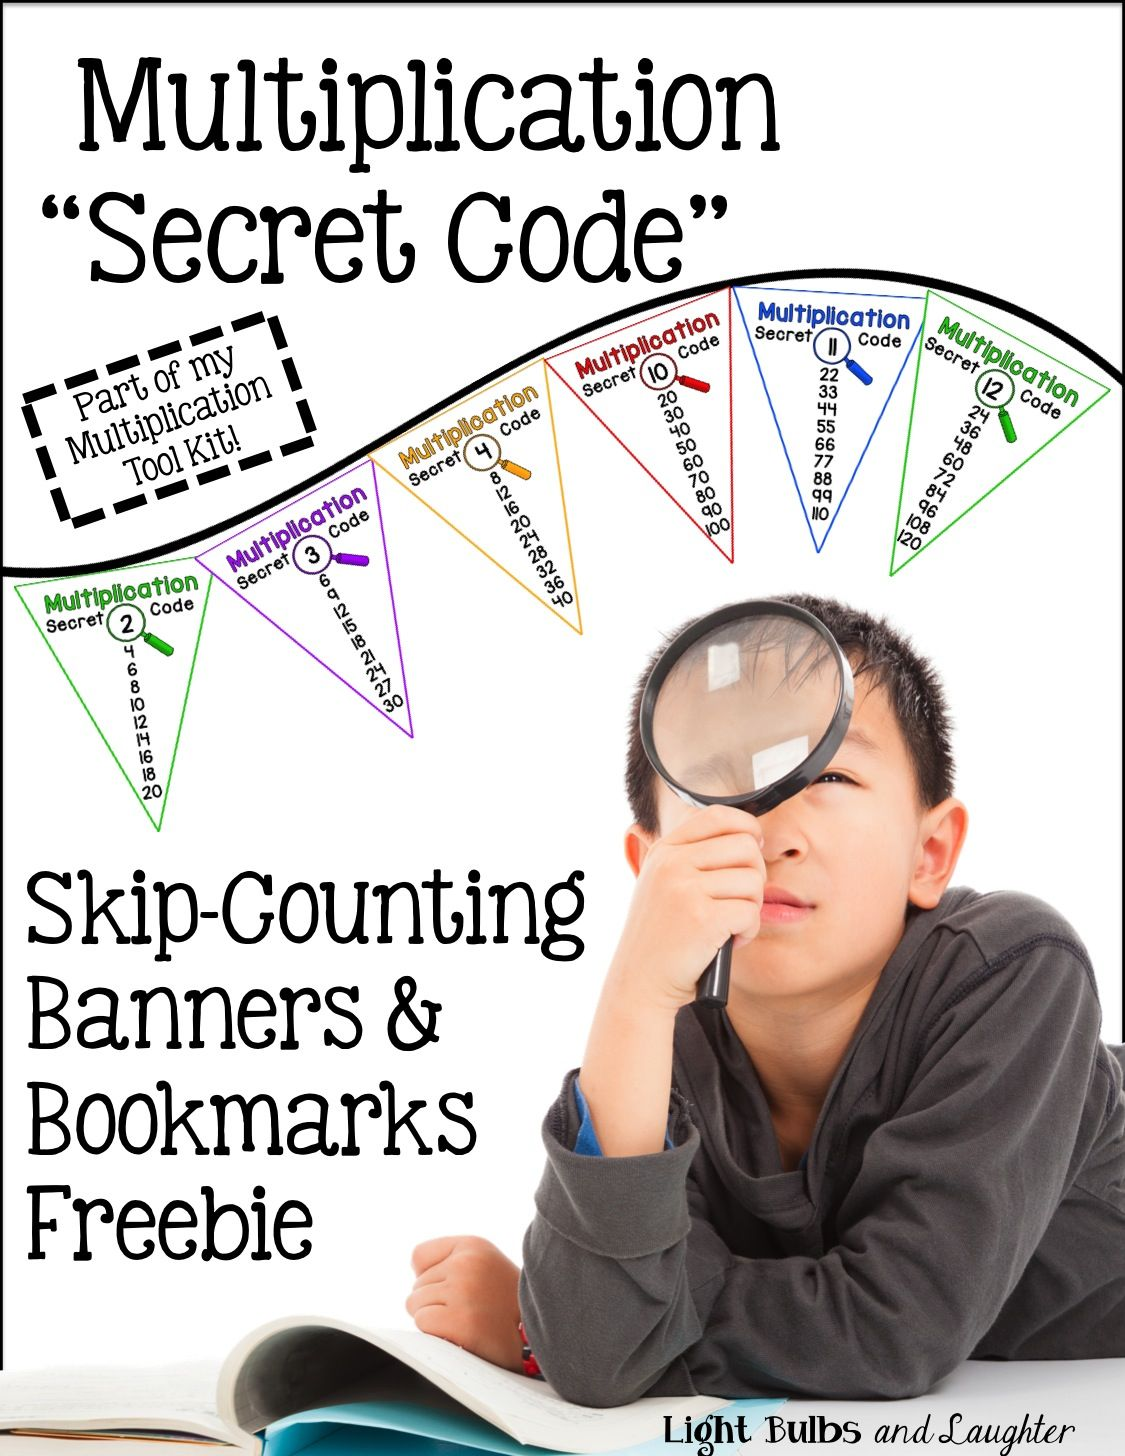 Multiplication Secret Code Banners Amp Bookmarks